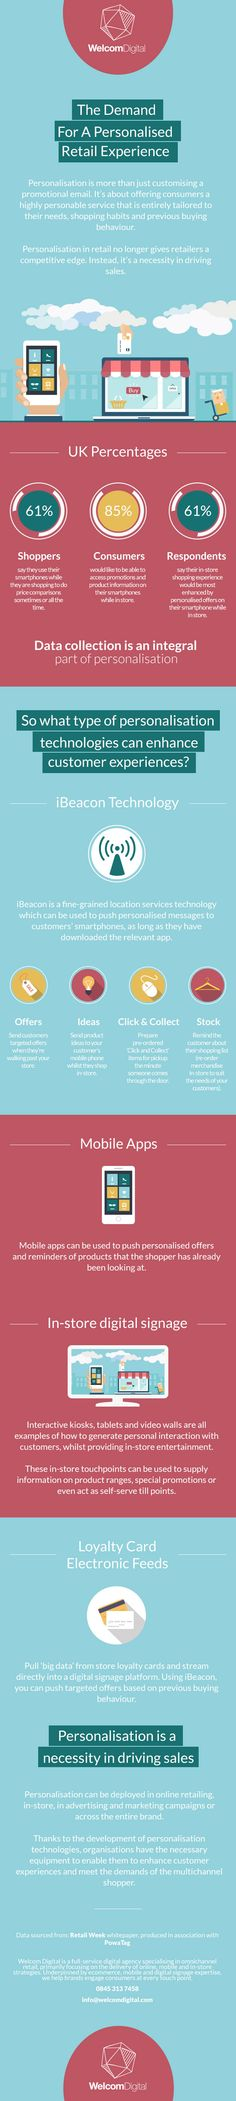 The demand for personalised retail experiences | Infographic by Welcom Digital. #Infographic #GraphicDesign